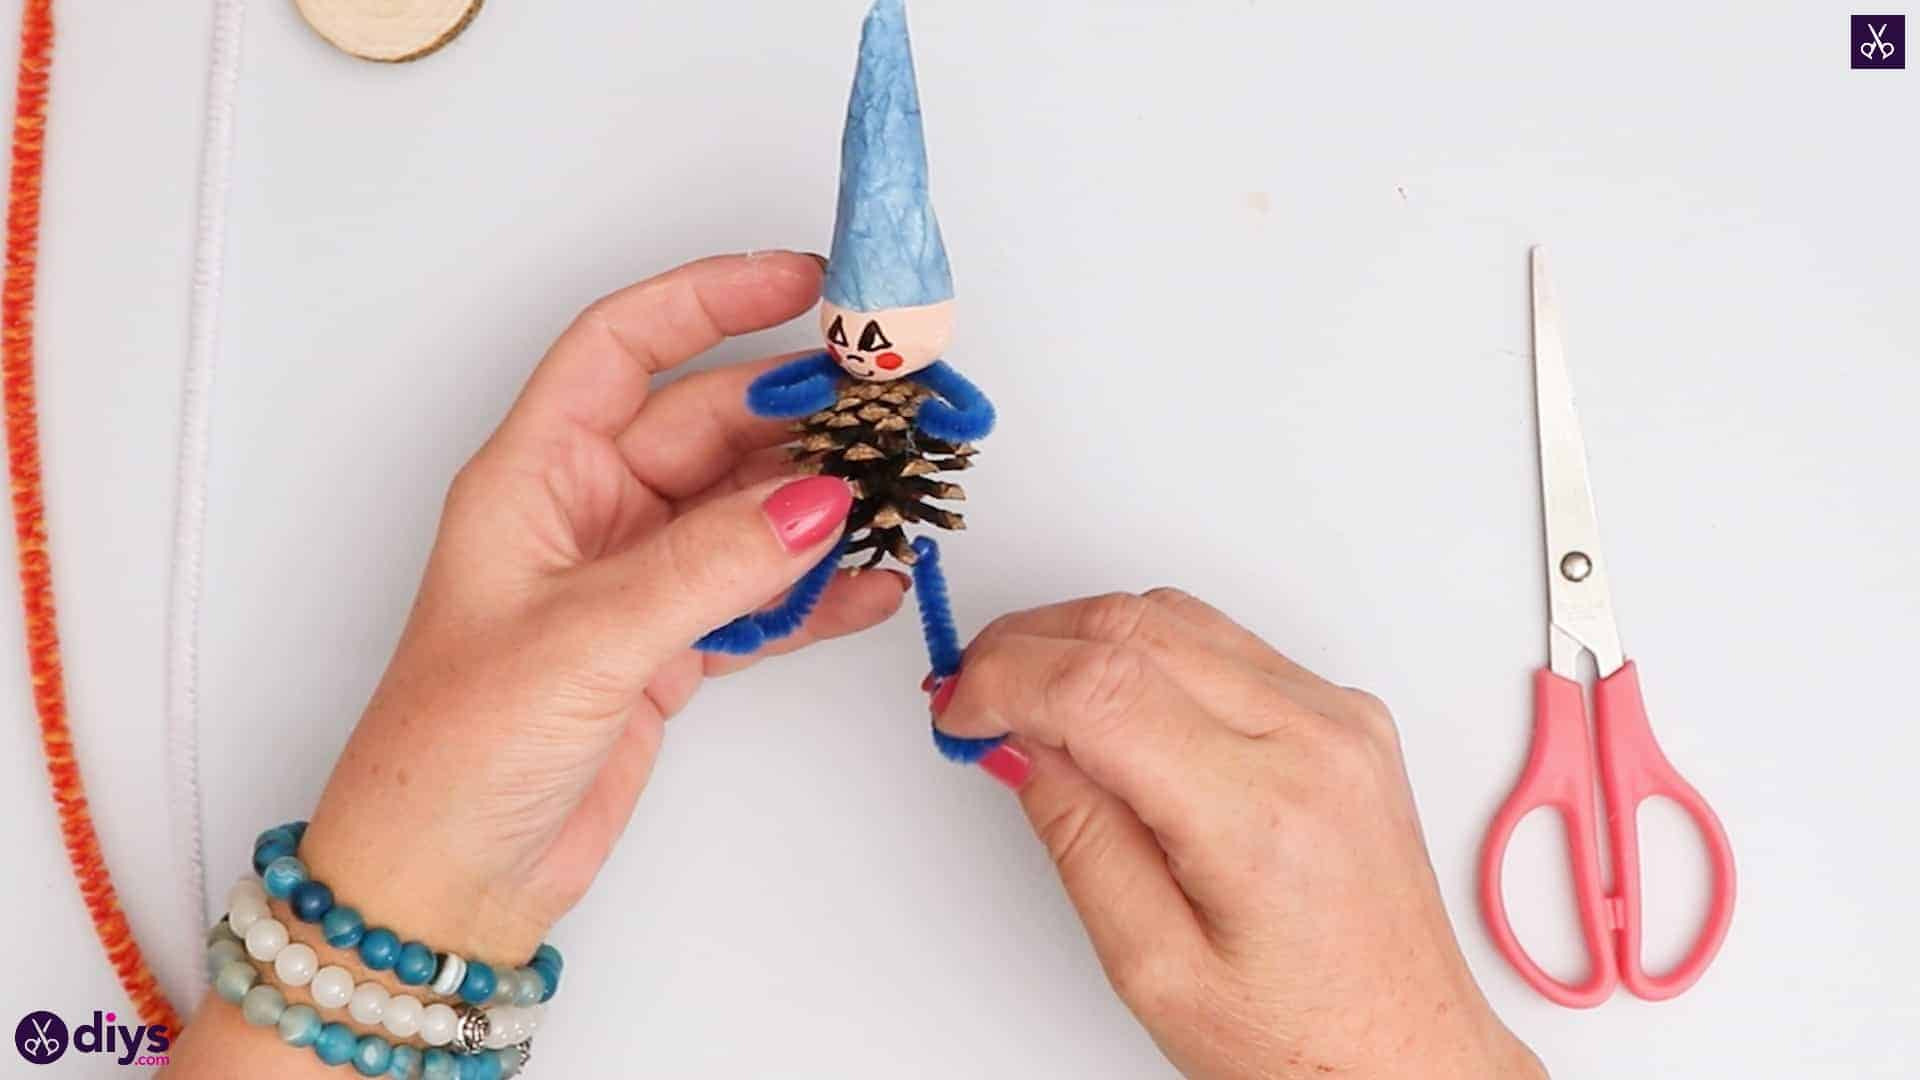 Diy pinecone gnome legs